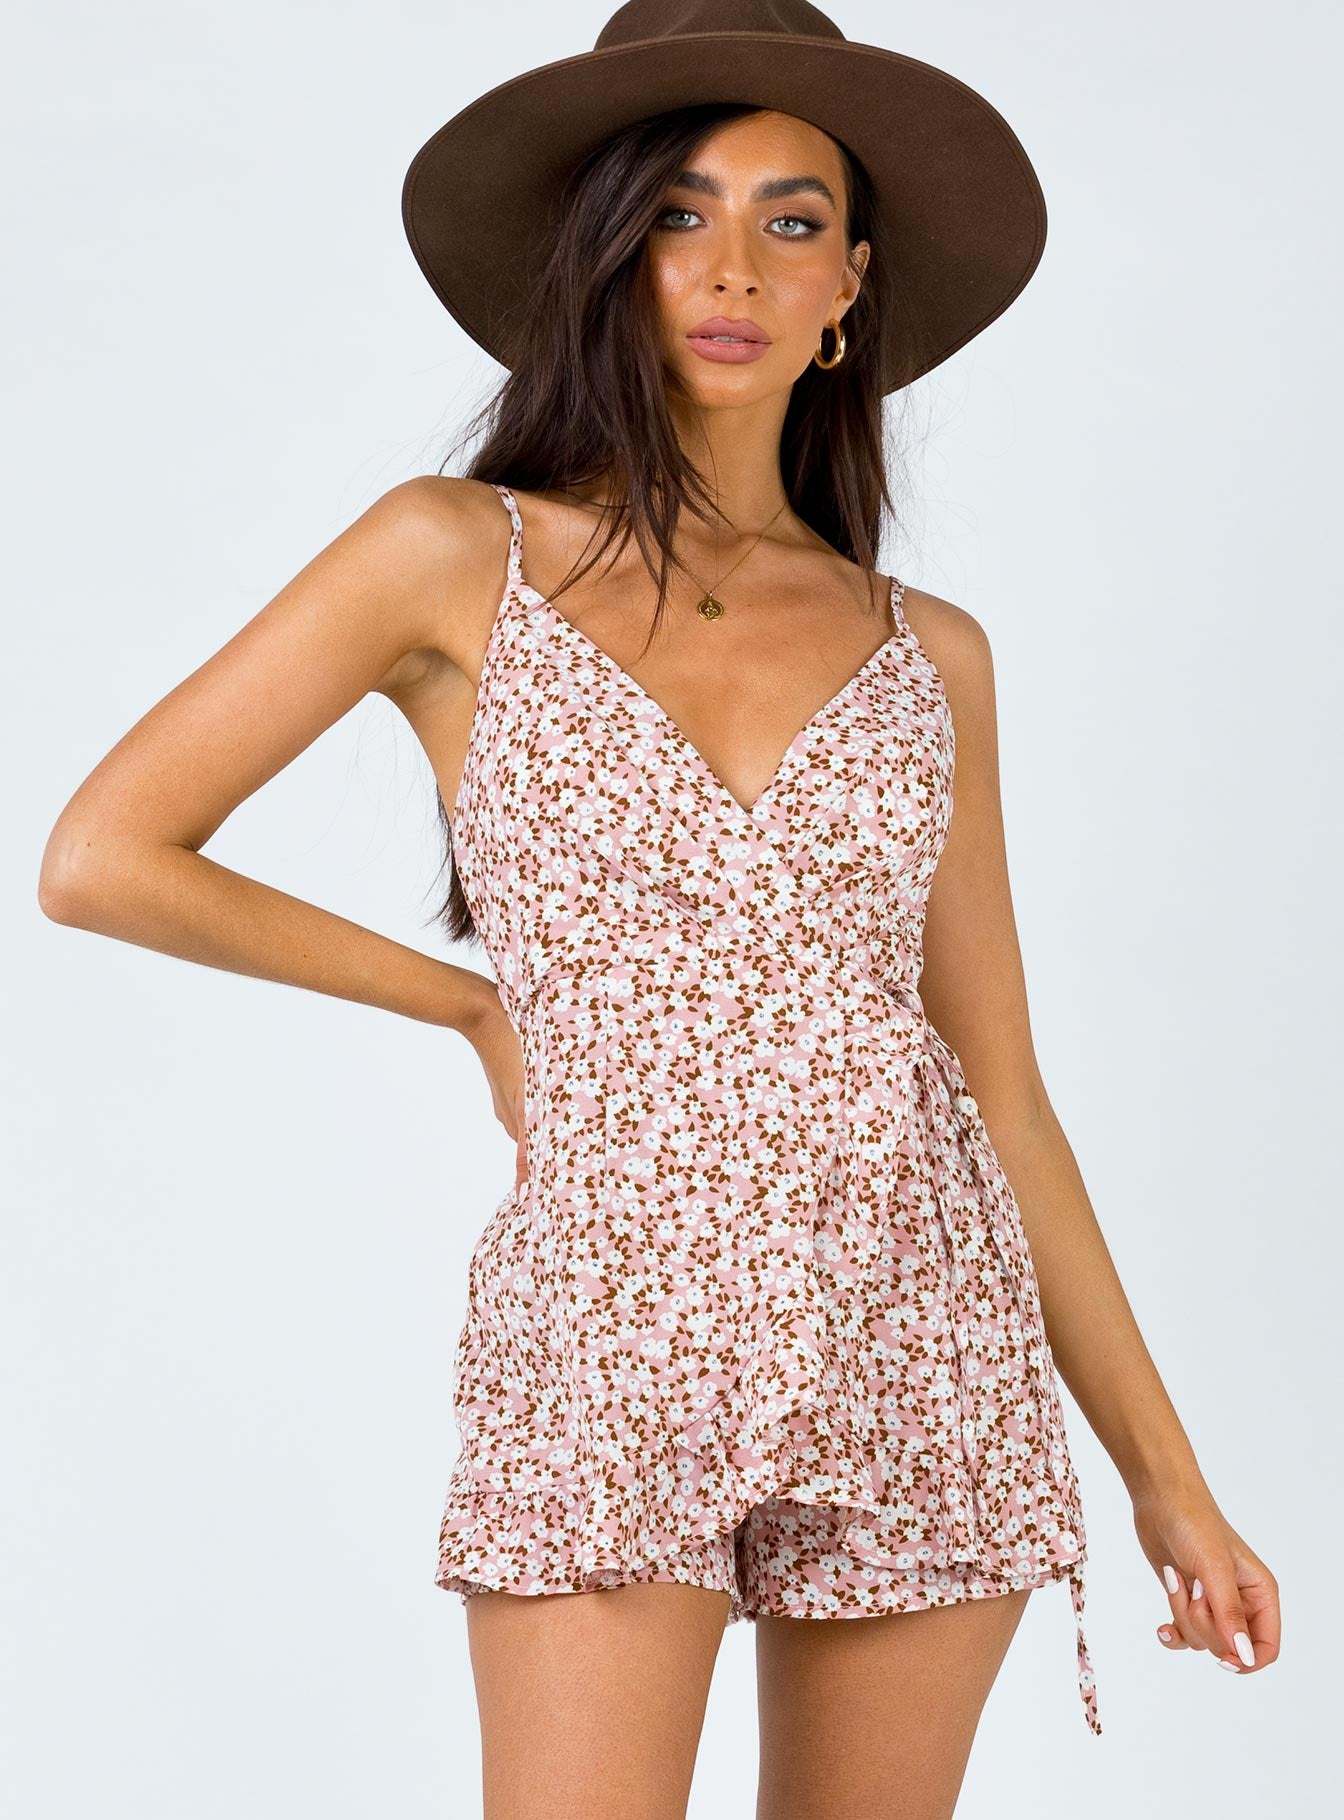 Angelle Playsuit Pink/White Floral